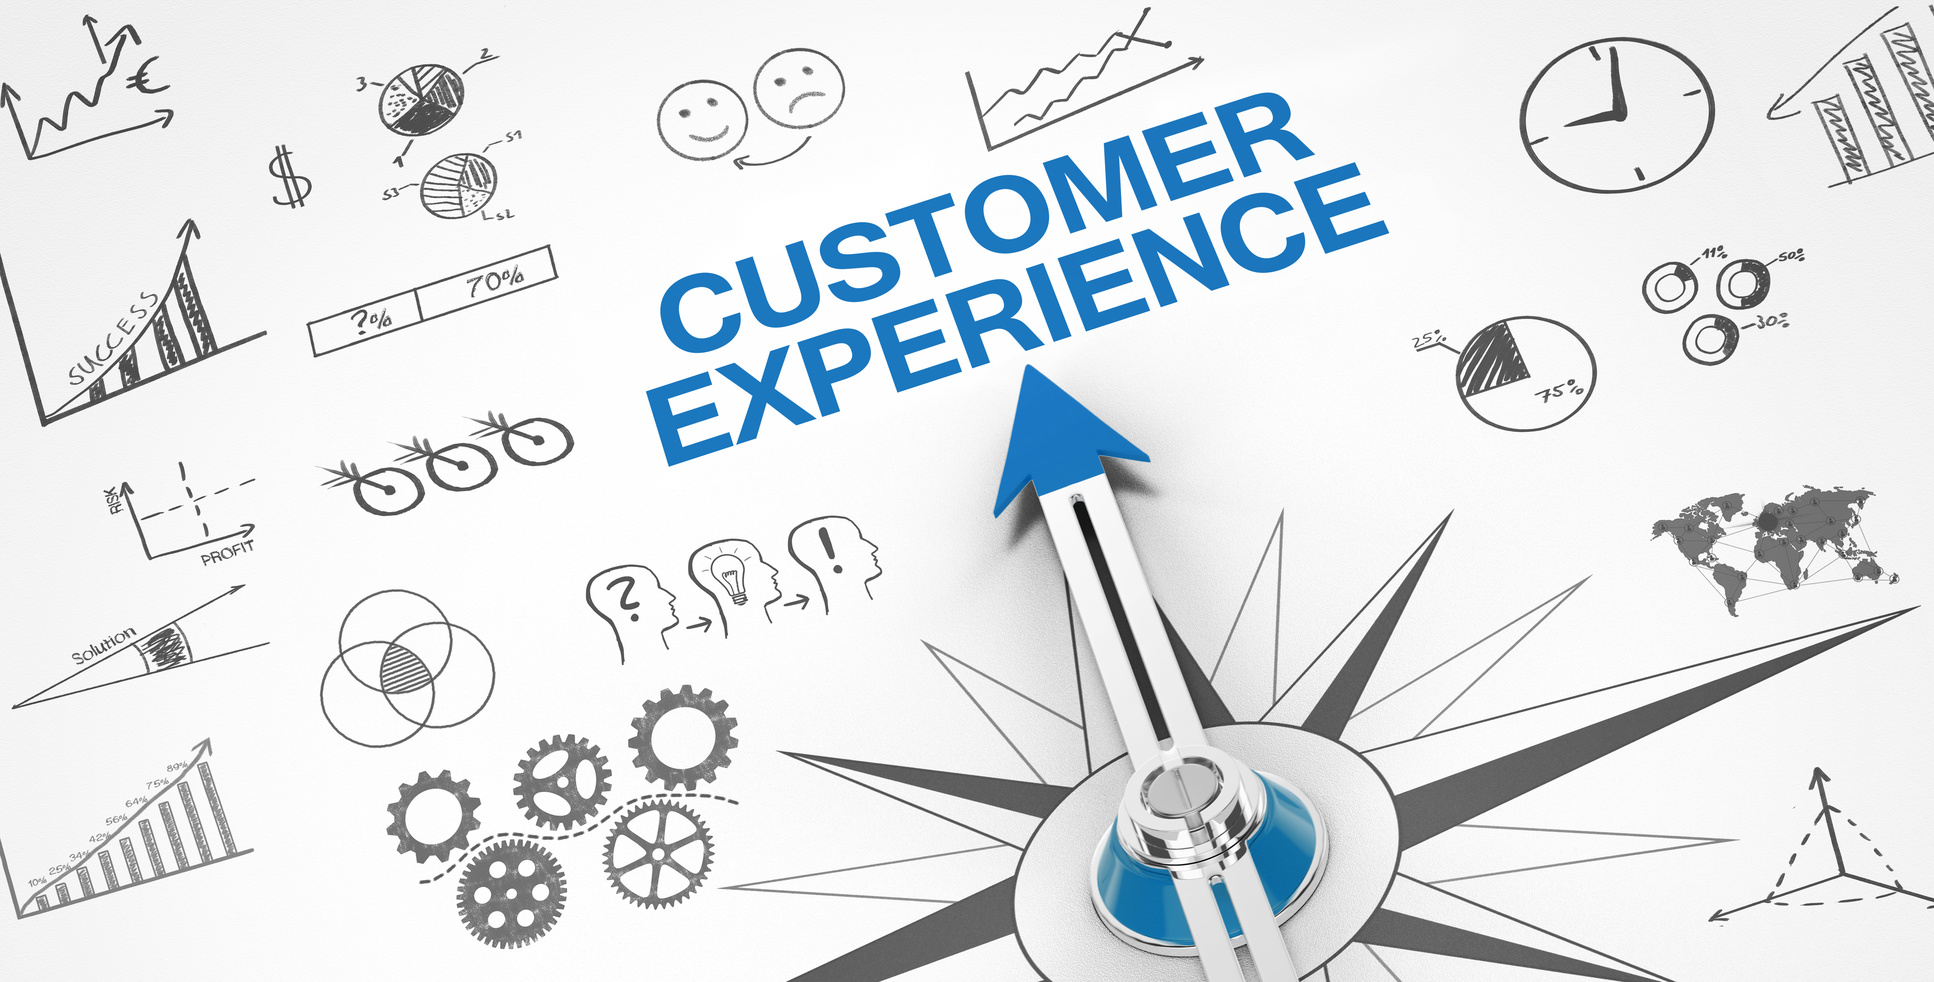 Customer experience w omnichannel